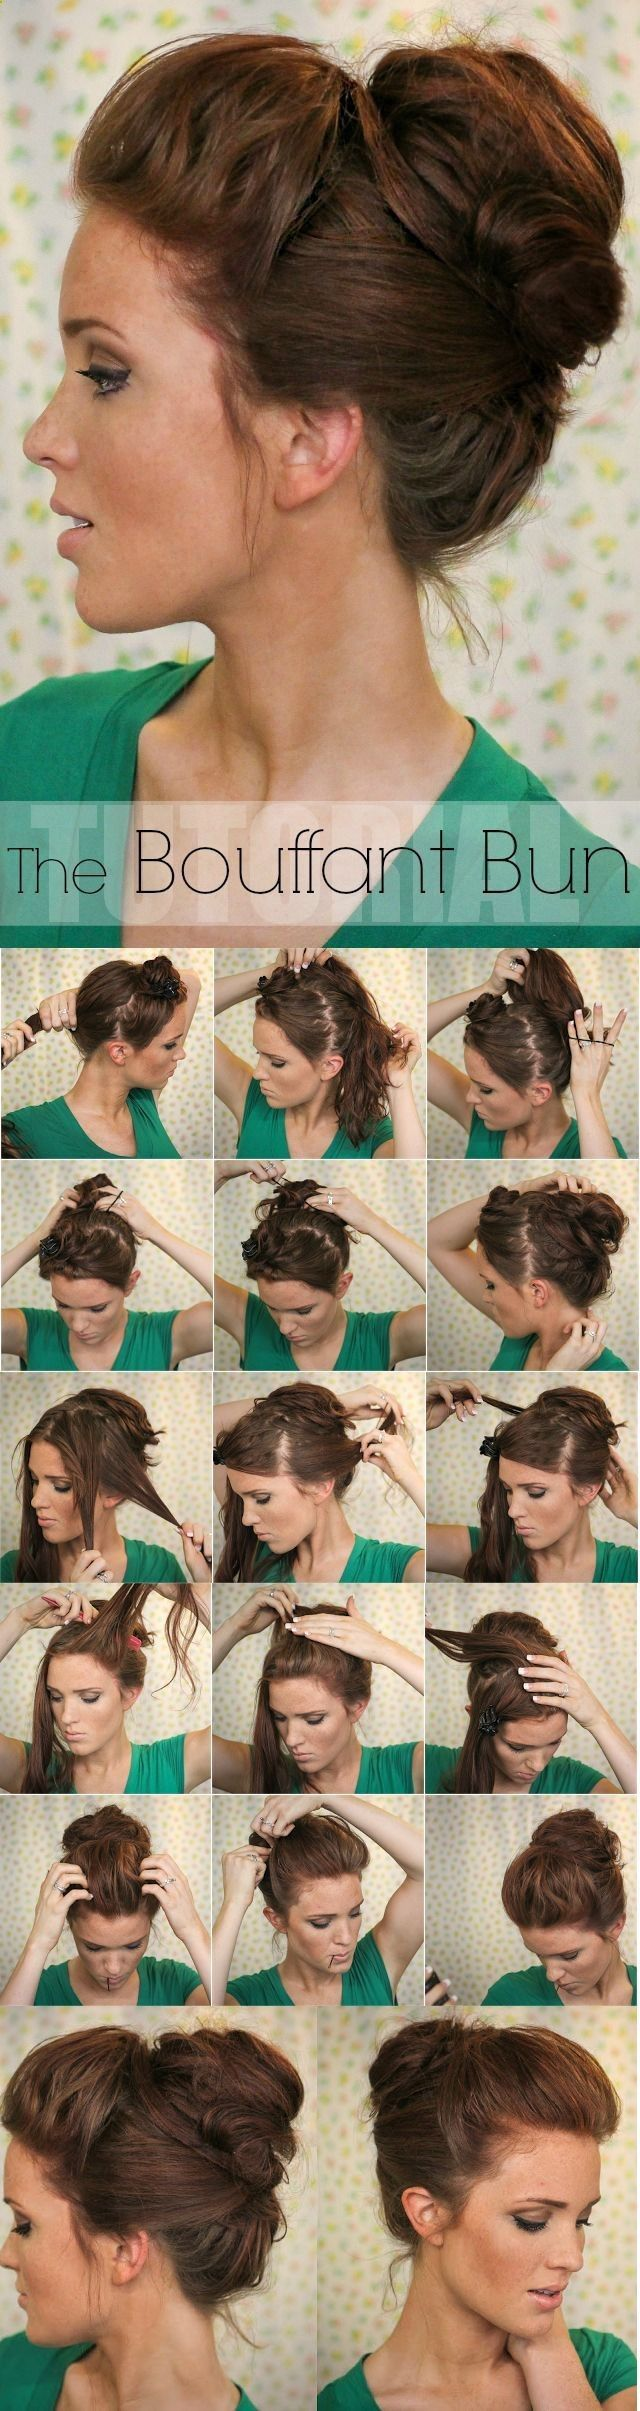 best images about hair dous on pinterest